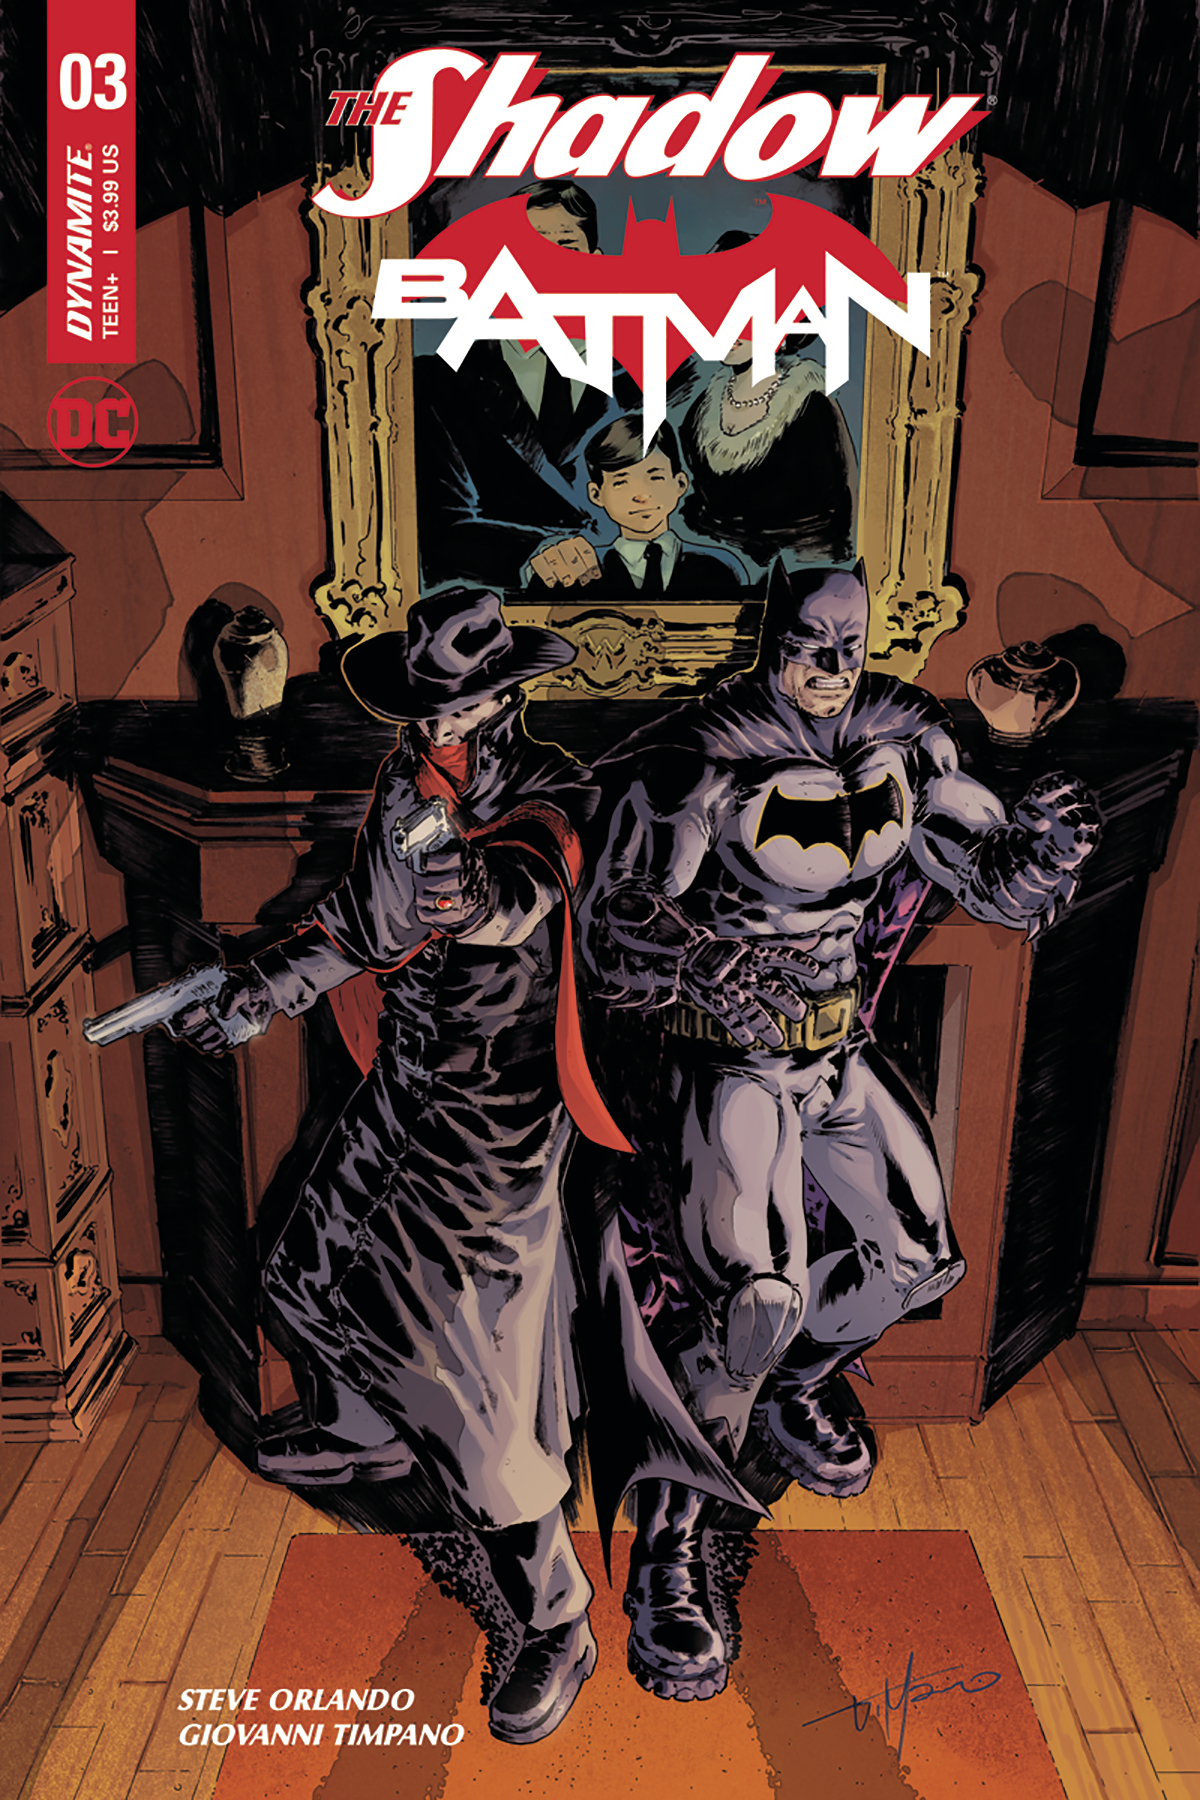 SHADOW BATMAN #3